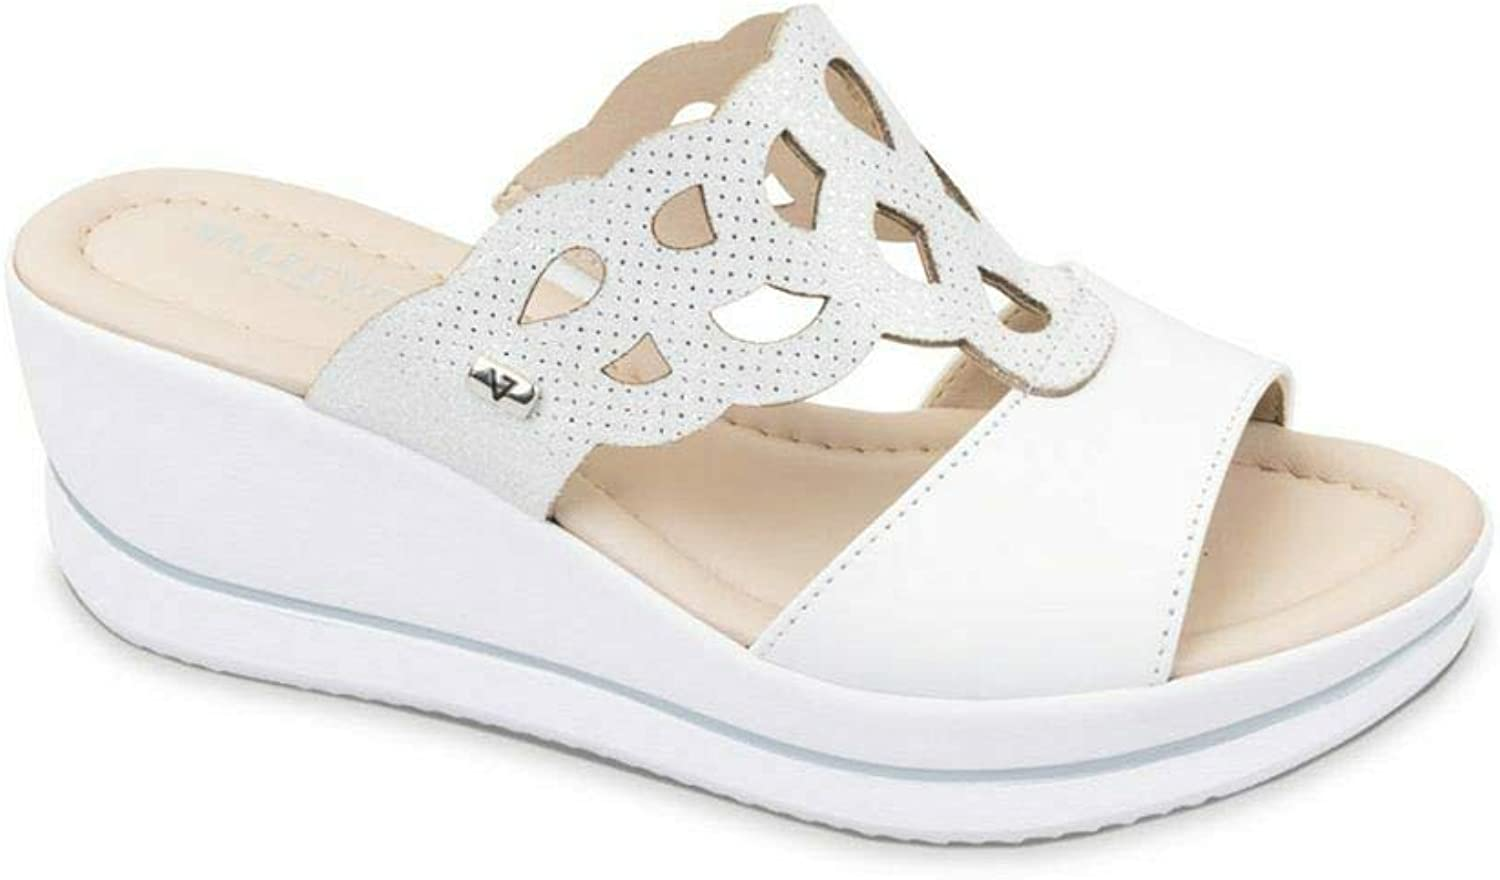 Vallegreen Sandal Wedge shoes Woman White Leather Made in